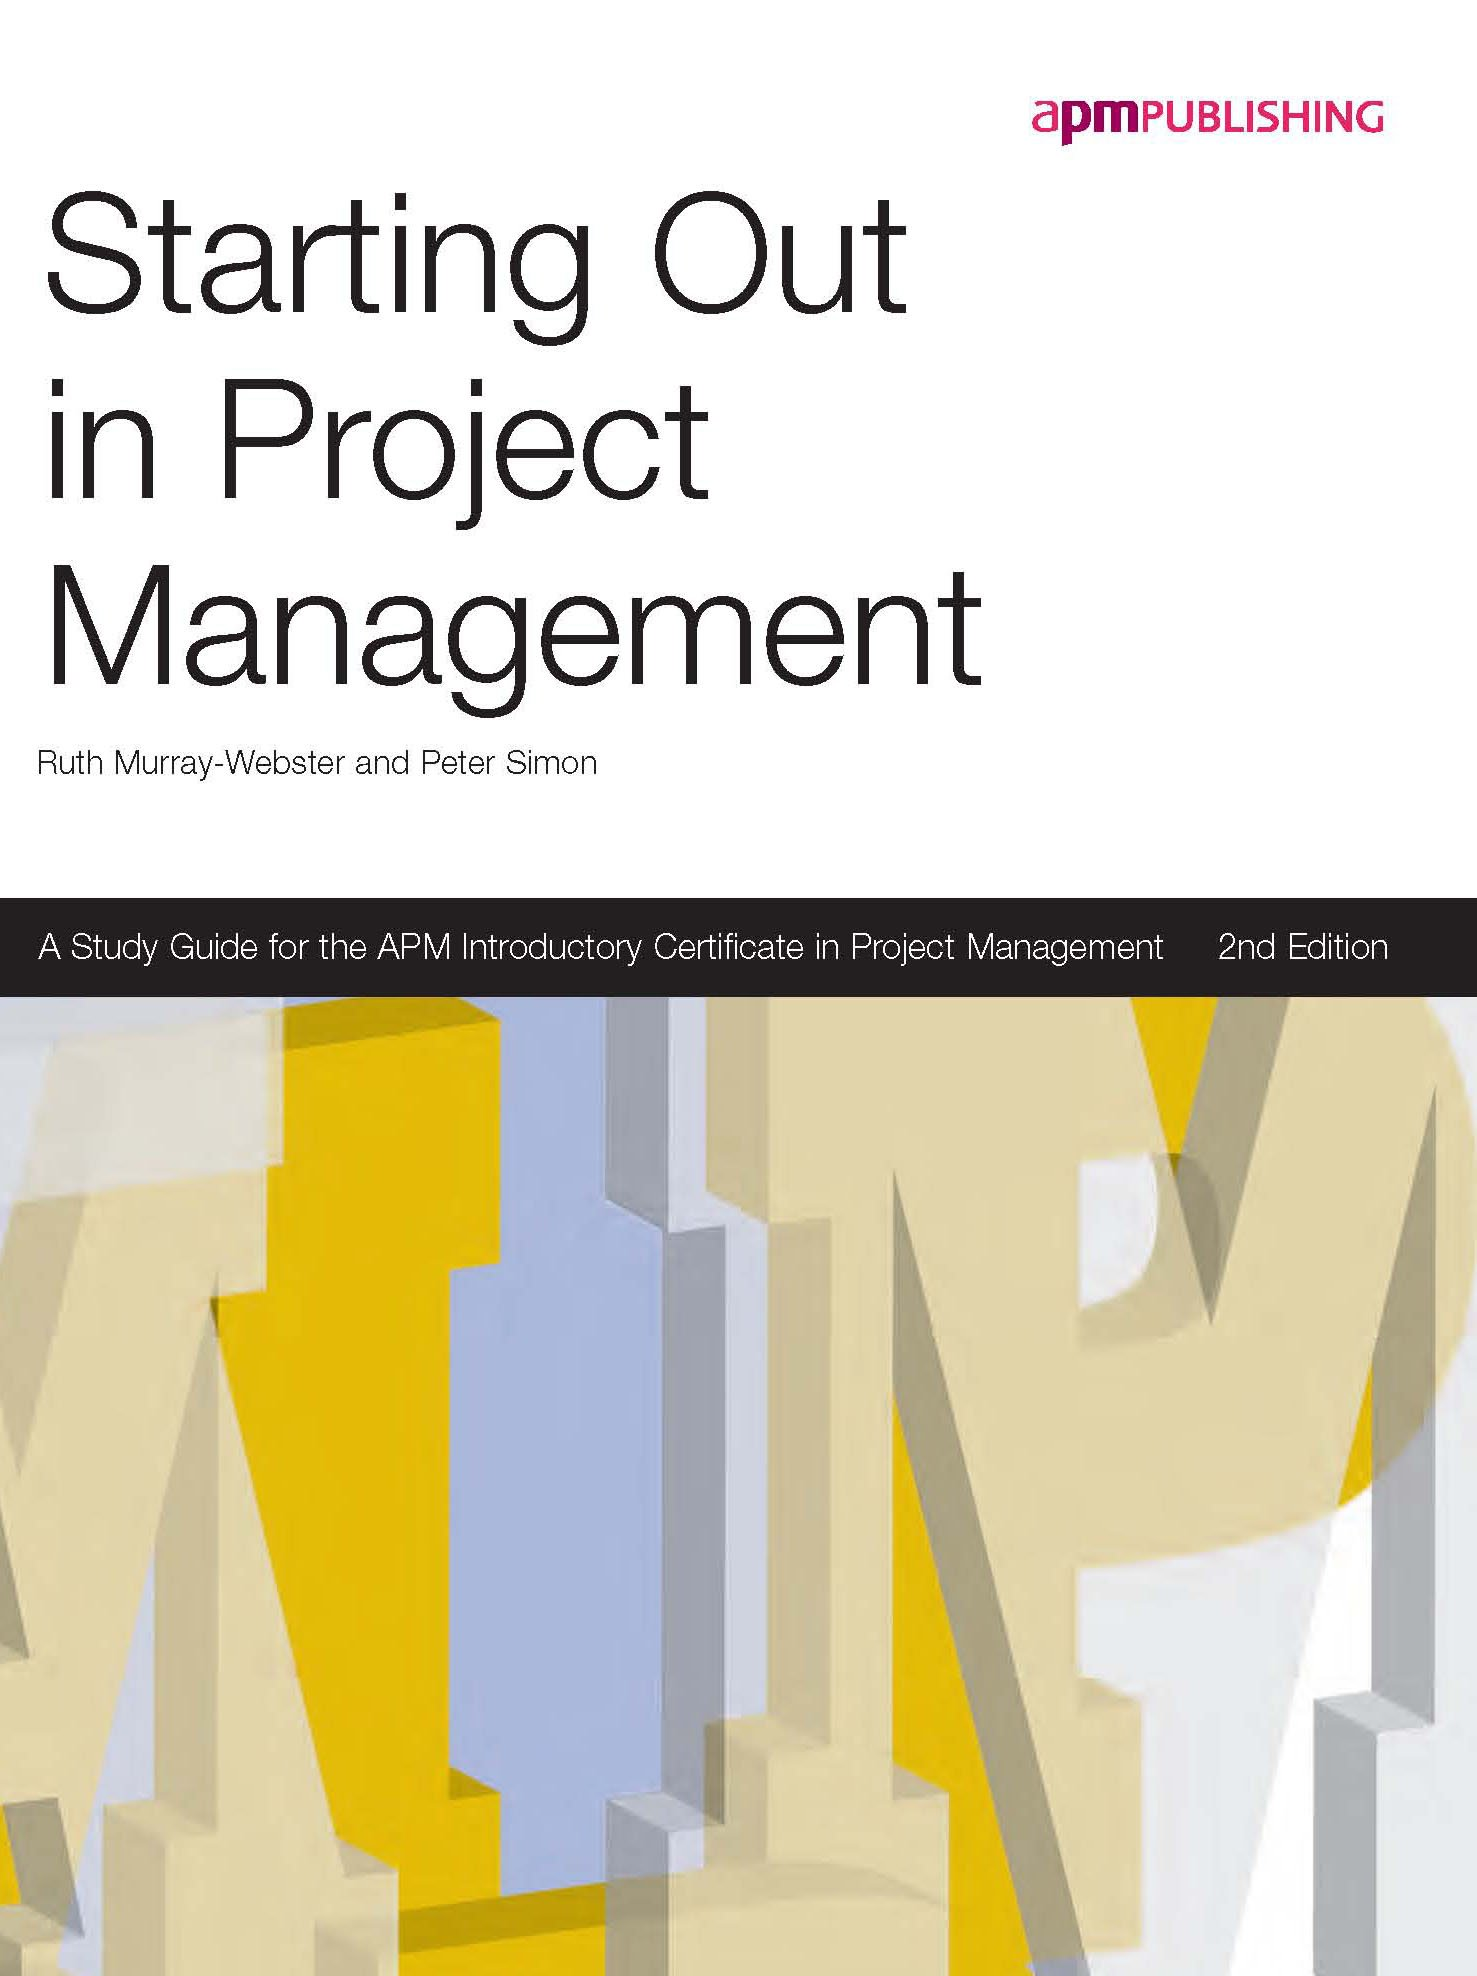 Starting Out In Project Management 2nd Edition Amazon Ruth